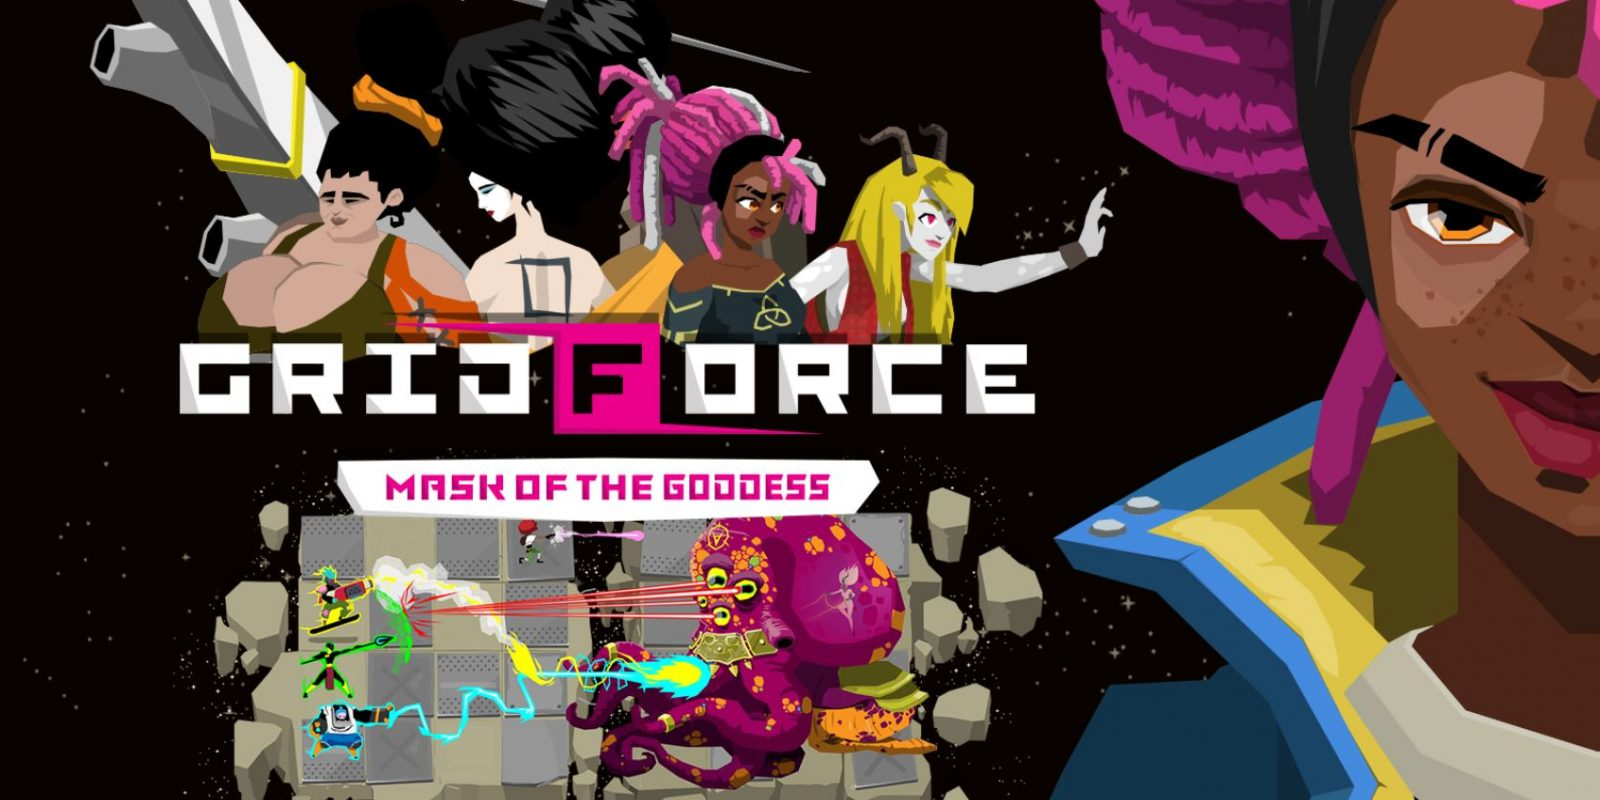 Grid Force – Mask Of The Goddess